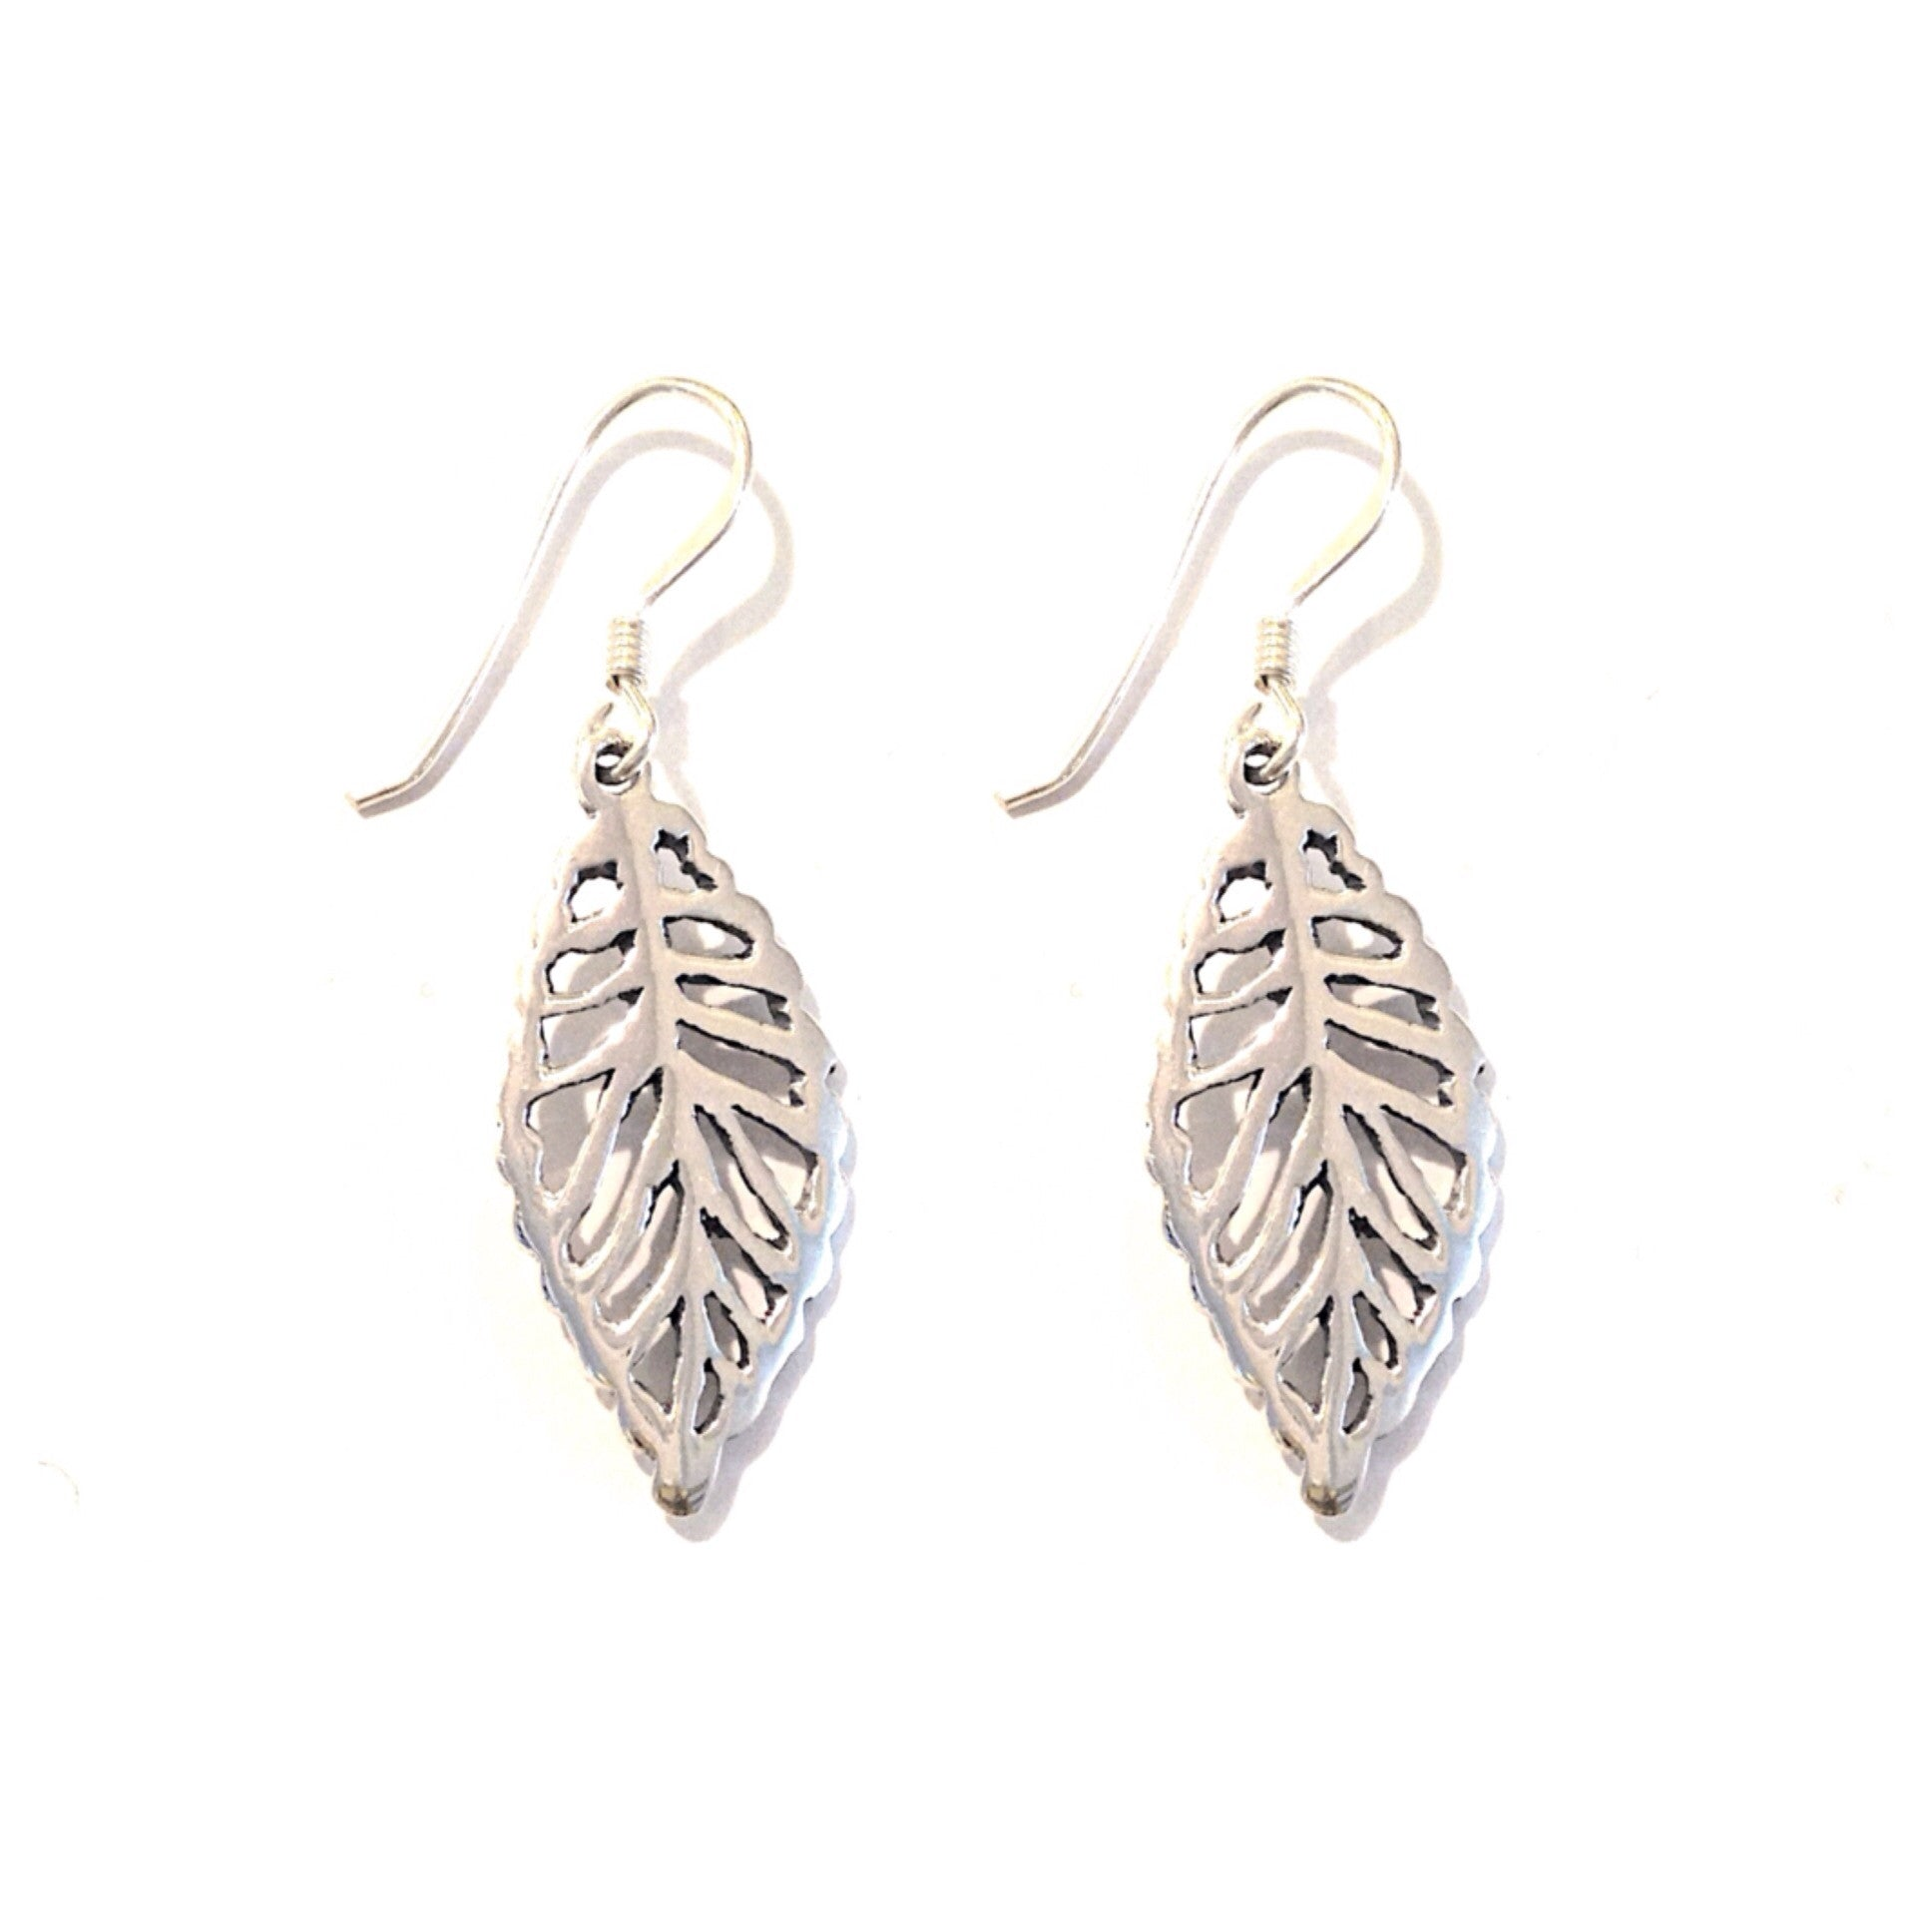 Silver Leaves Earrings, $14 | Sterling Silver | Light Years Jewelry